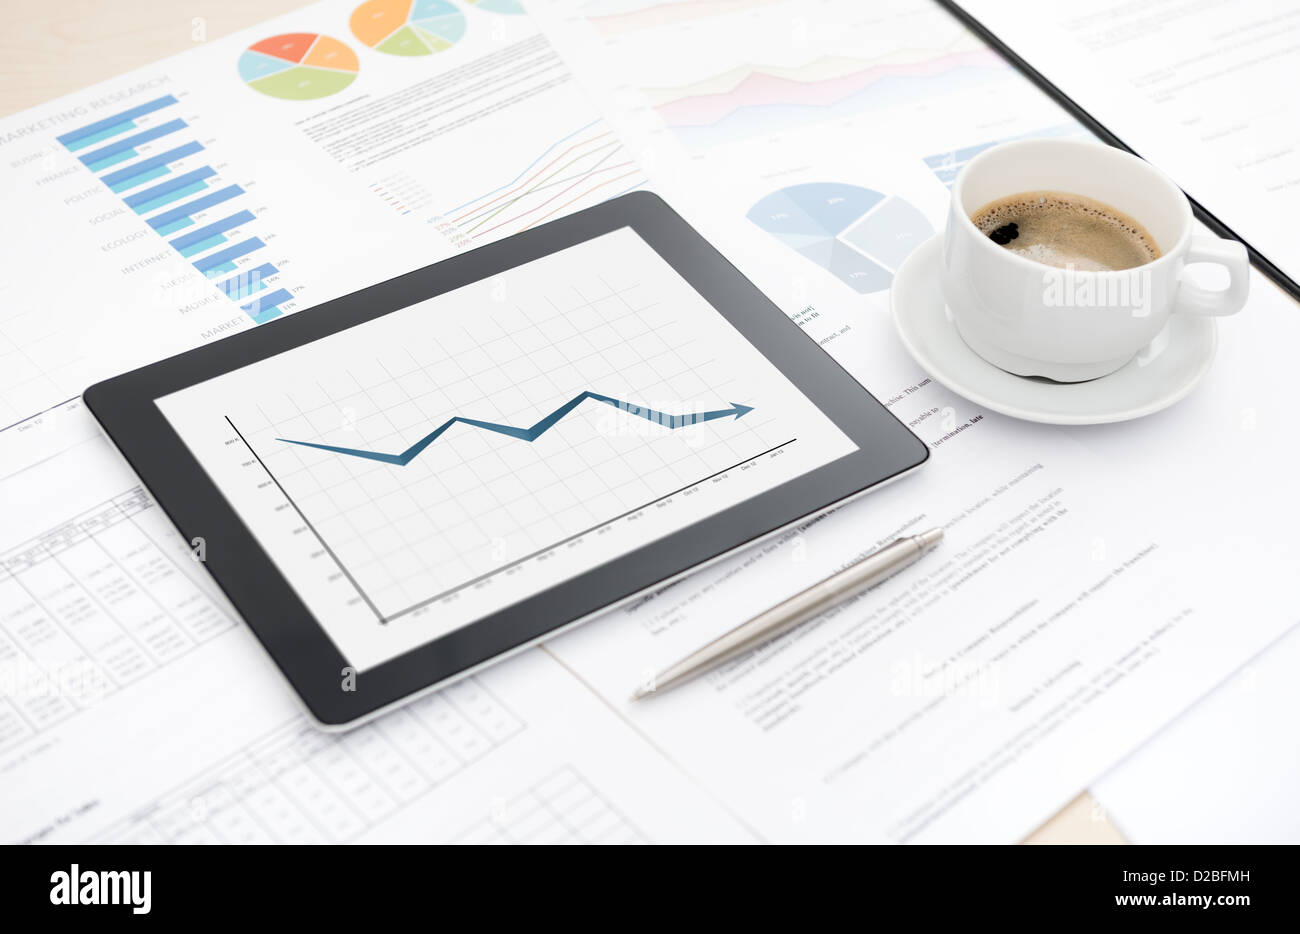 Desktop with bad statistic report on a modern digital tablet, some papers with charts and graphs and with a cup - Stock Image